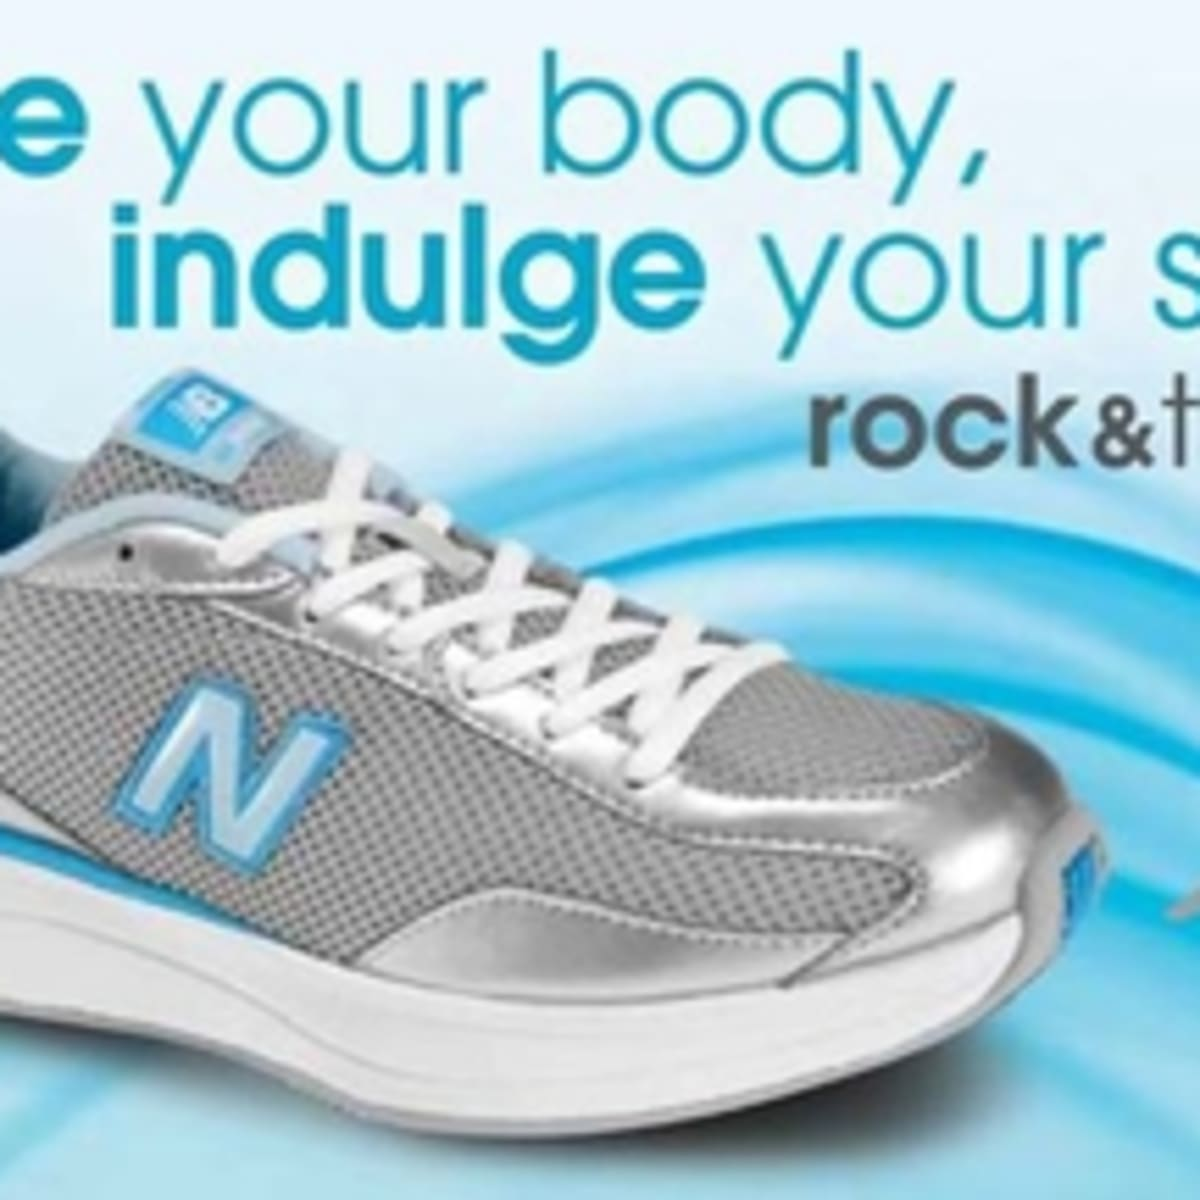 uvas Magnético Confundir  New Balance Rock & Tone Trainers and Sandals - HubPages